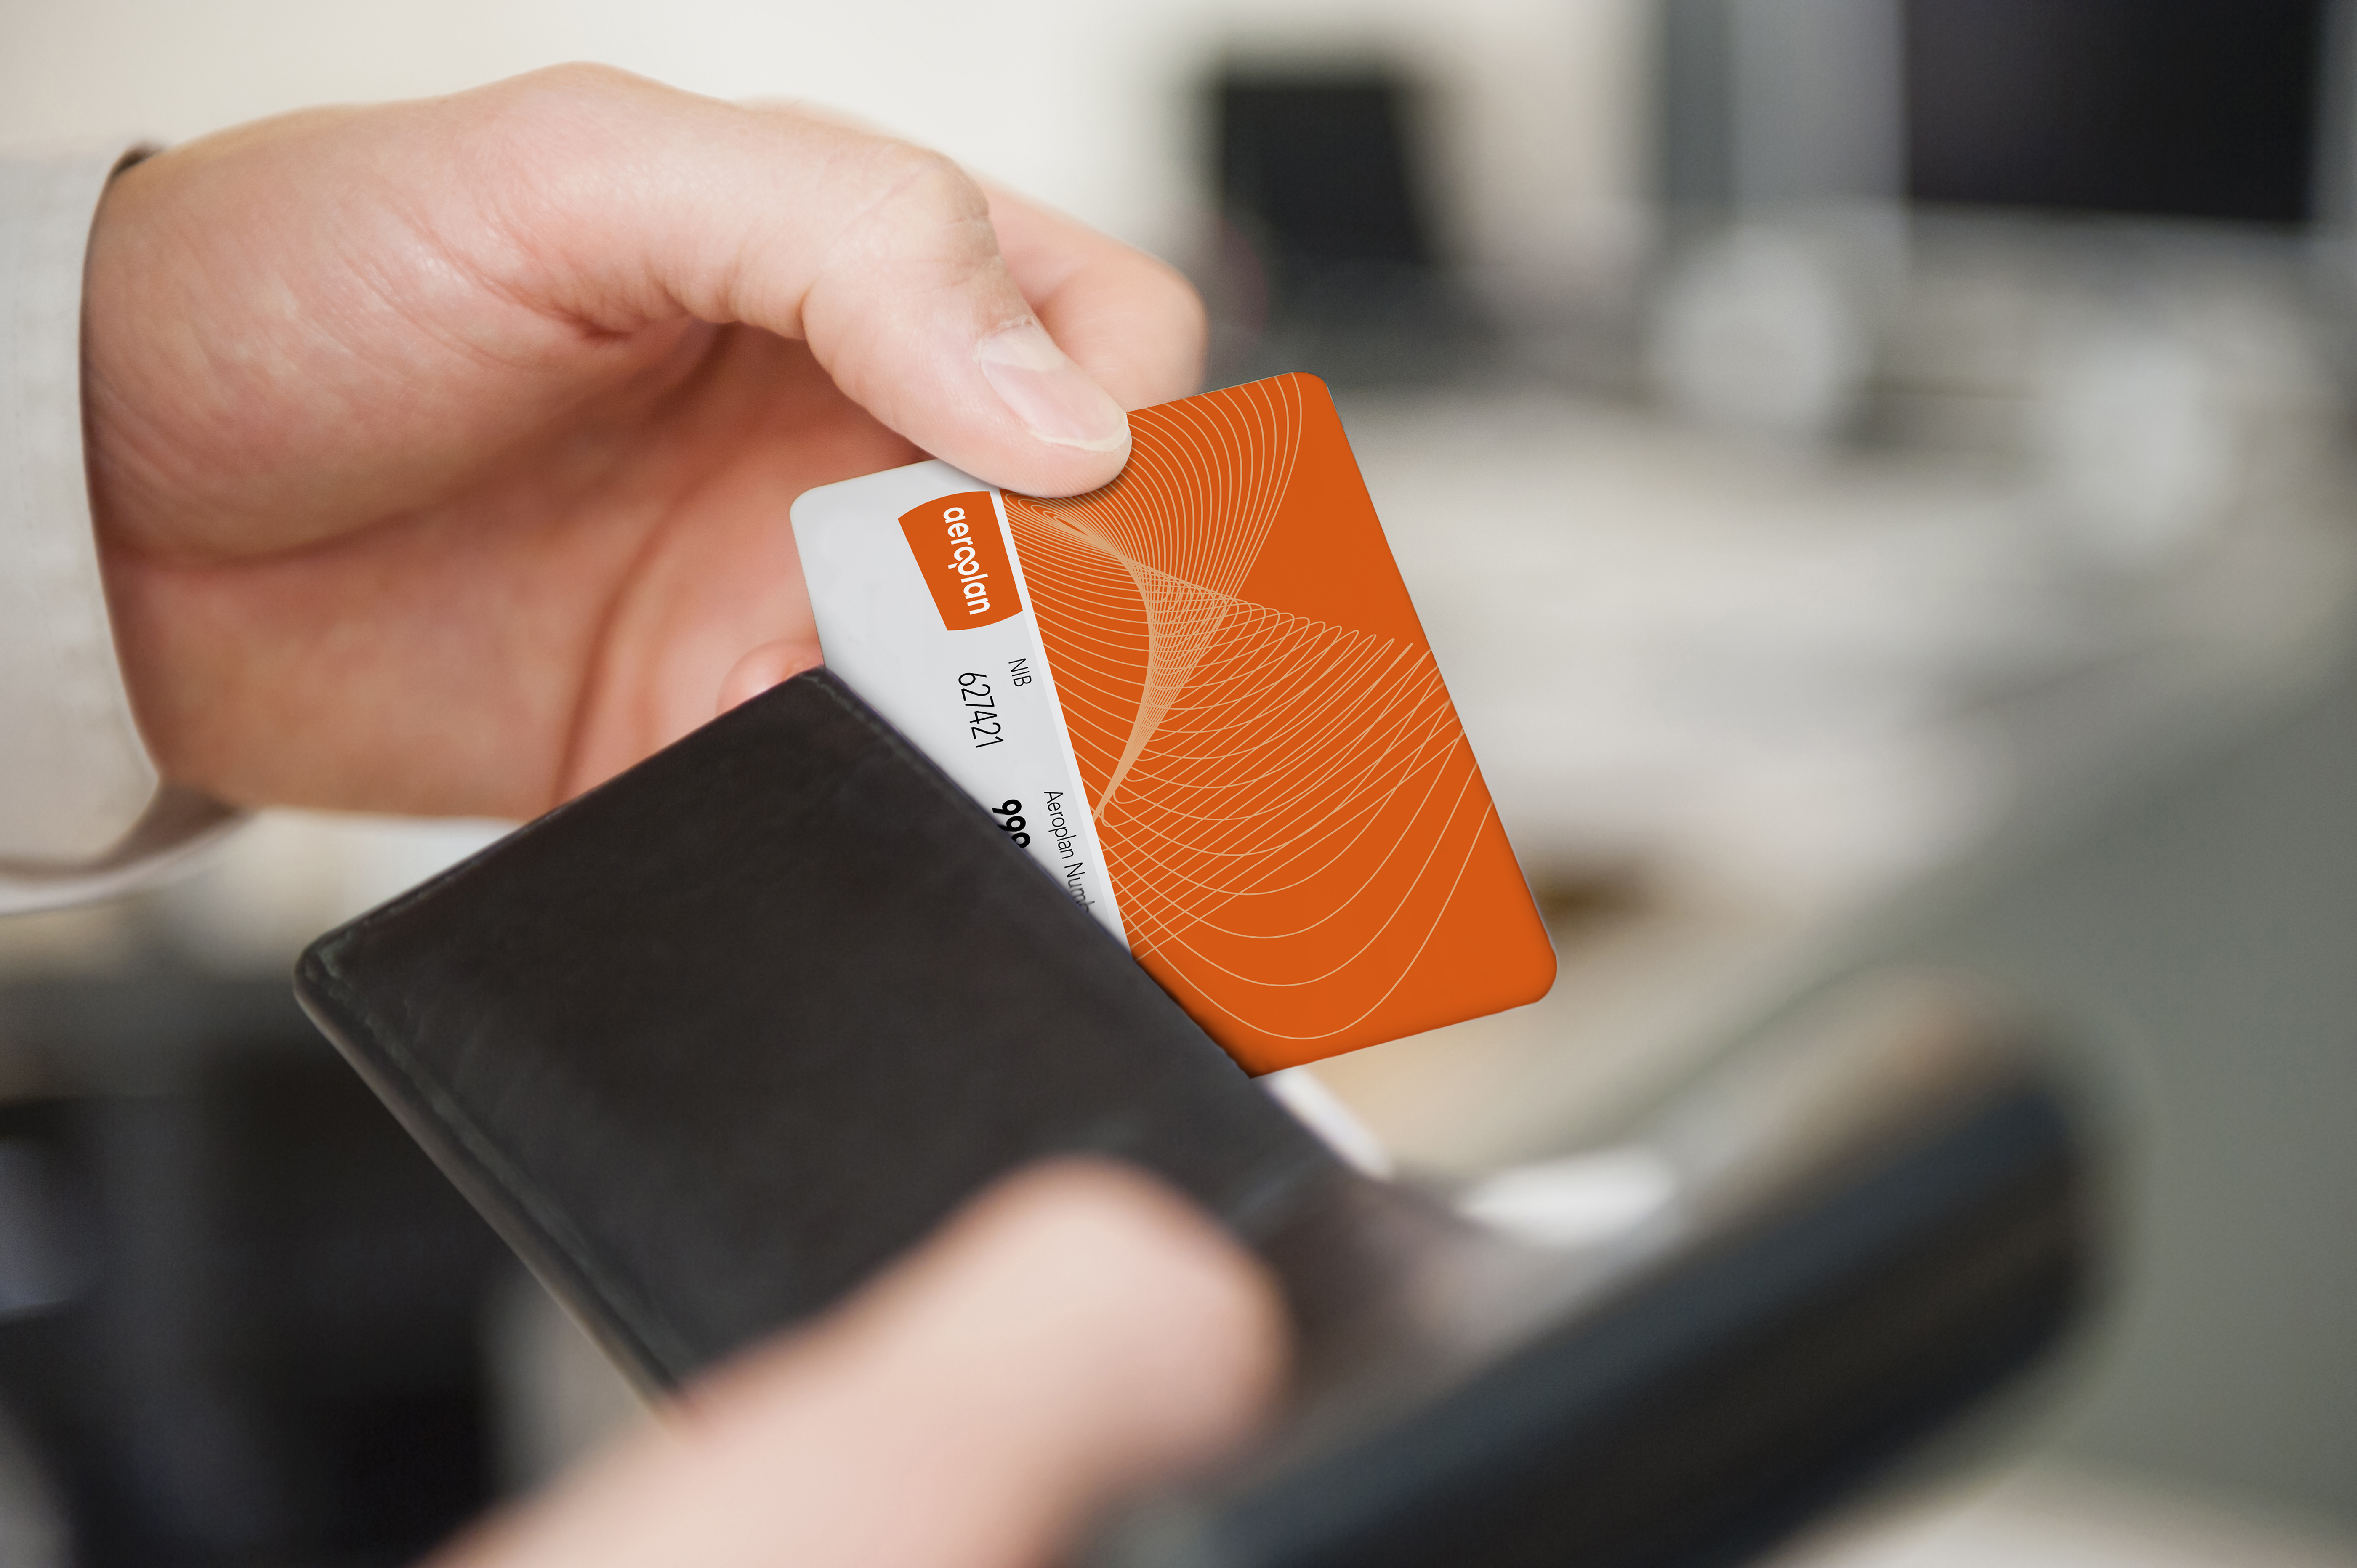 Aeroplan contest will give 5 lucky winners 1M Miles